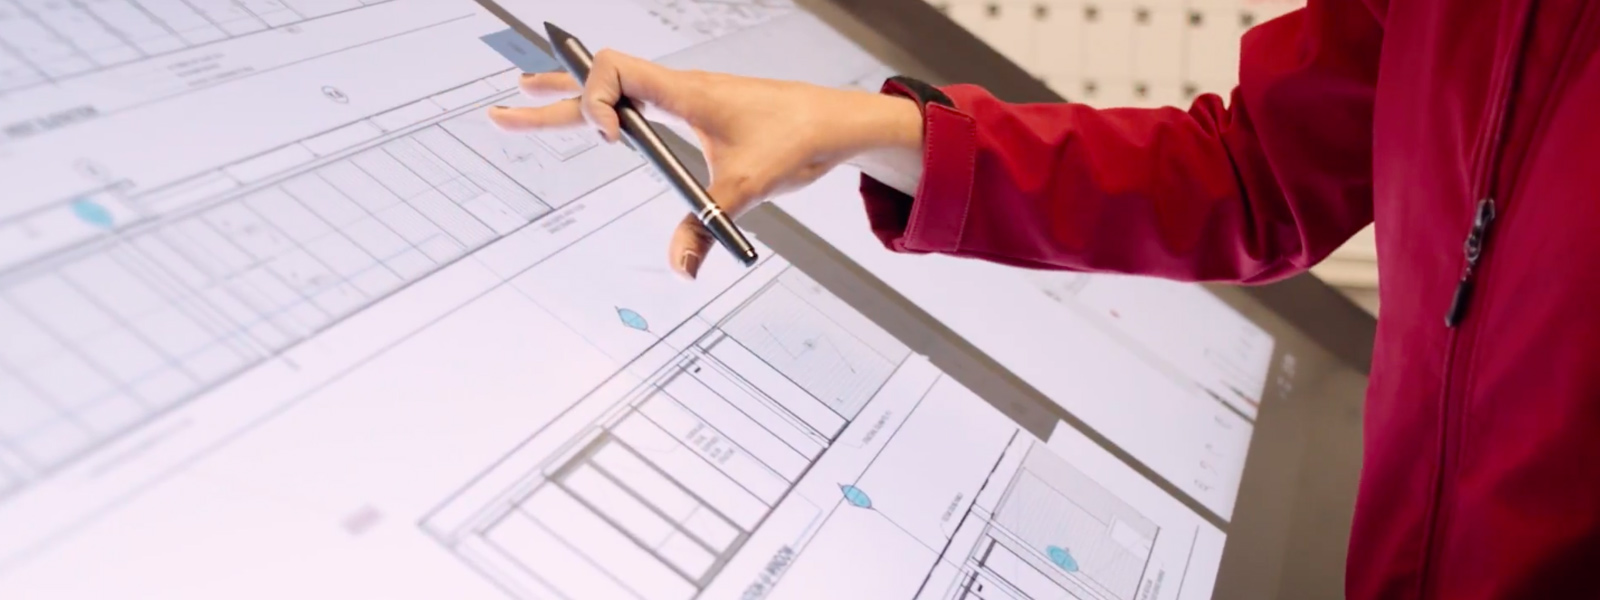 Suffolk Construction employee works on a blueprint on a Surface Hub.